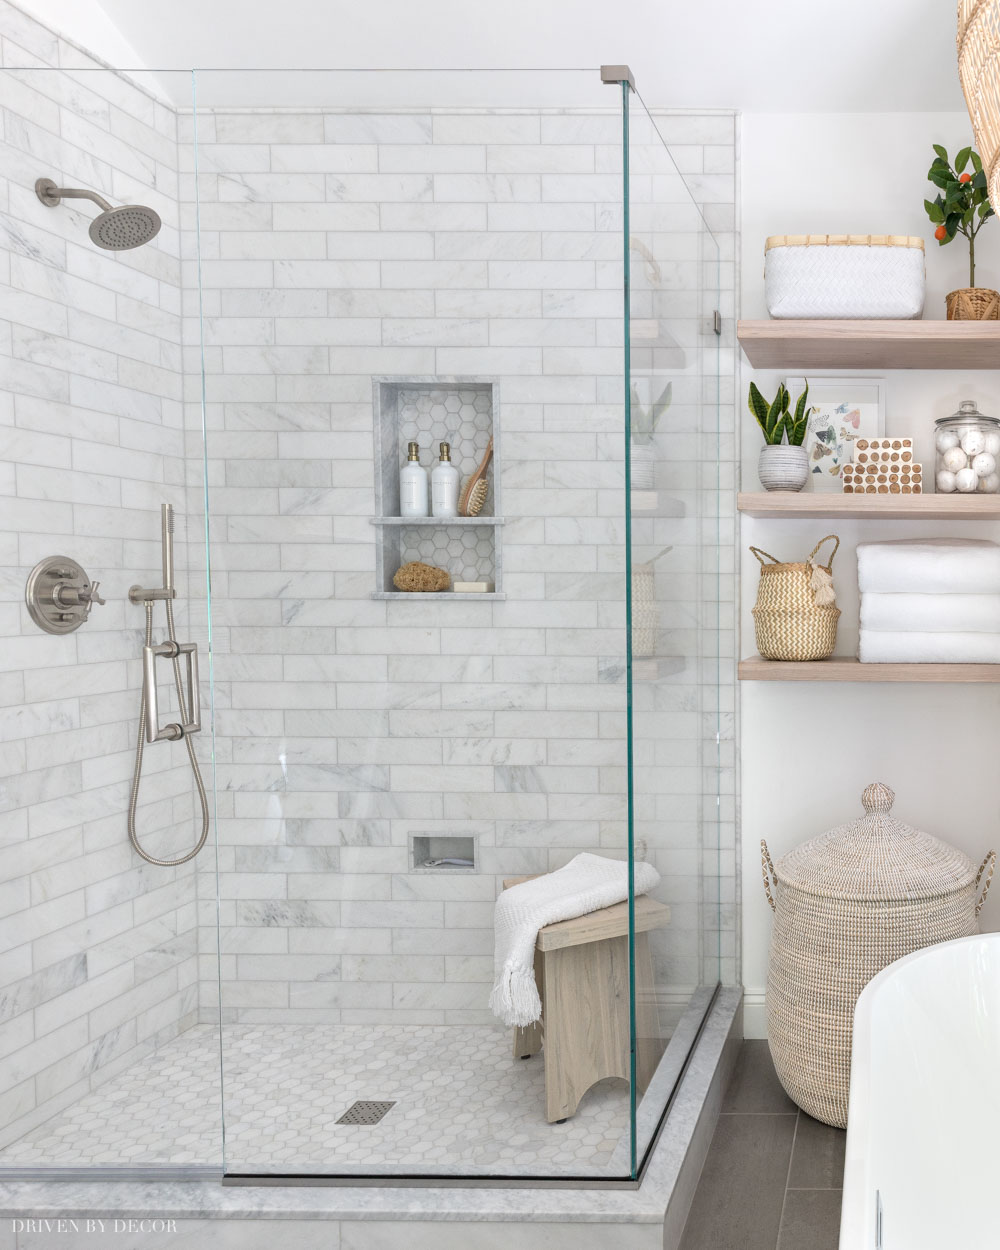 Love how she mixed metals with the brushed nickel finish of her shower hardware + brass accents in other parts of the bathroom